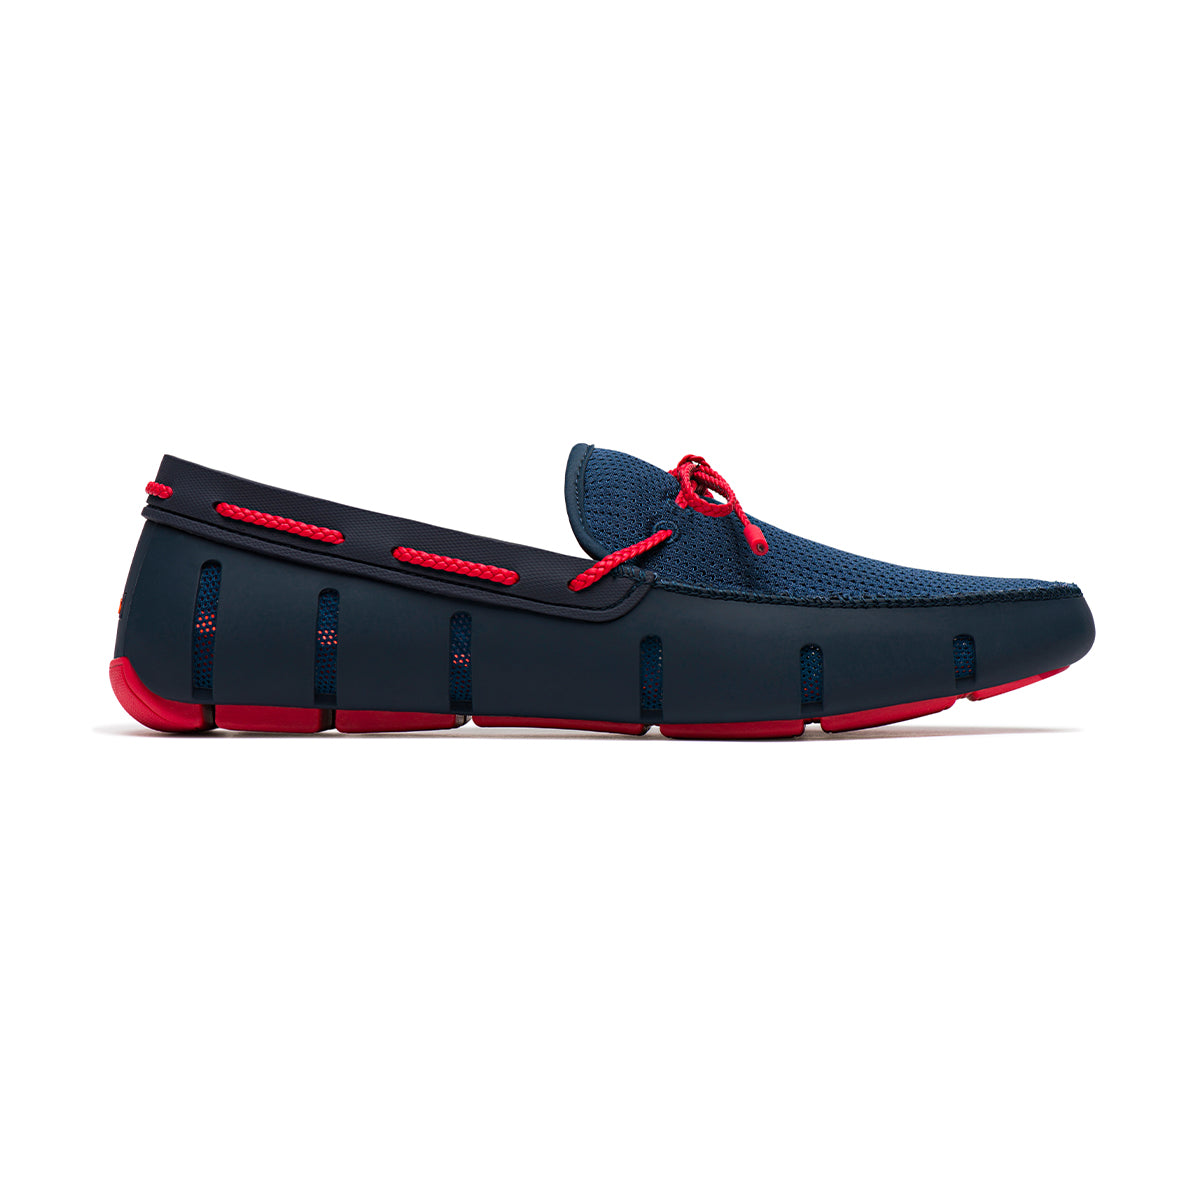 Braided Lace Loafer - background::white,variant::navy/red